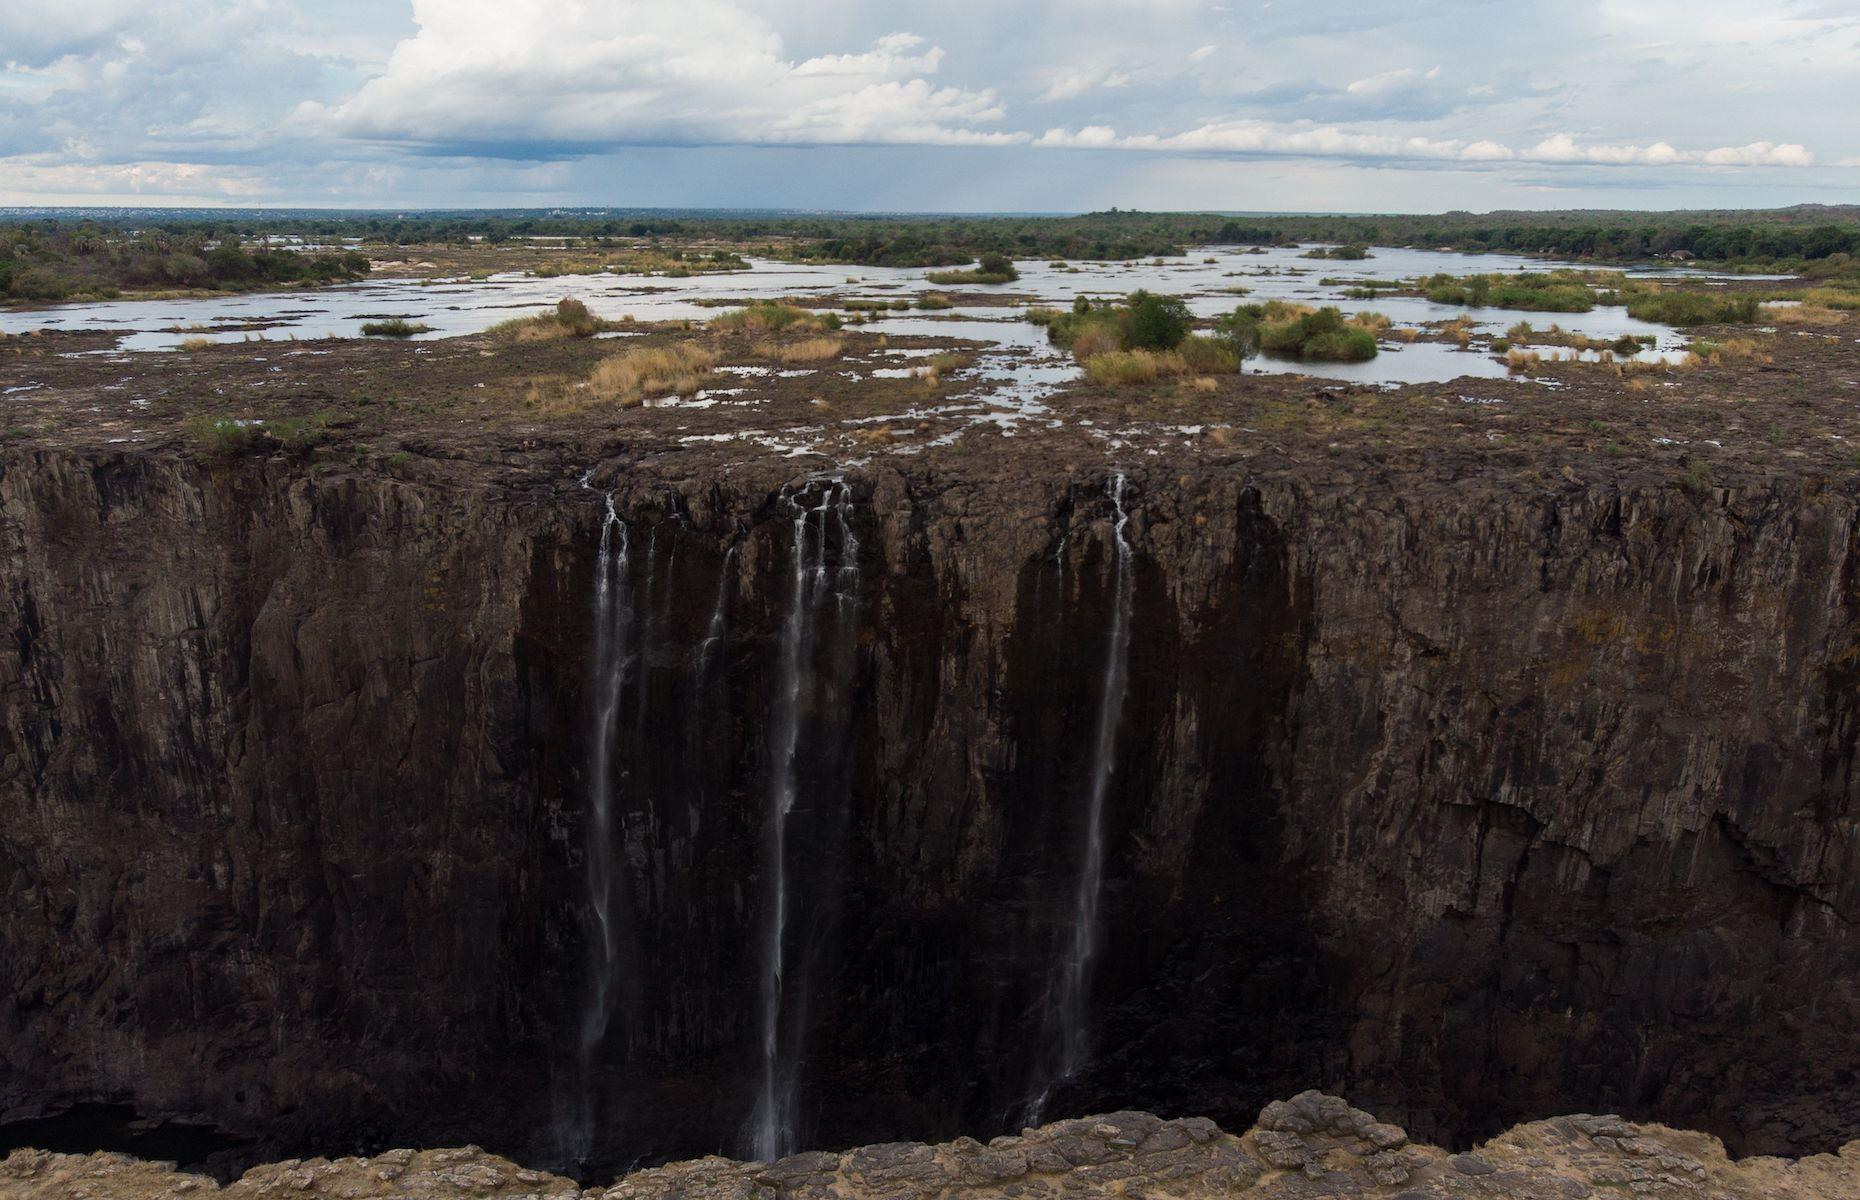 Slide 25 of 36: A Zimbabwe government official told the BBC that low water levels are becoming more frequent and that the average flow over the falls in 2019 was down by almost 50% (pictured here in December 2019). While water levels improved a few weeks later after rains fell in the Upper Zambezi River, the level was still much lower than previous years. Ongoing changes to one of Africa's most famous tourist attractions will have widespread ramifications for both the waterfalls' ecosystems as well as its local economies.